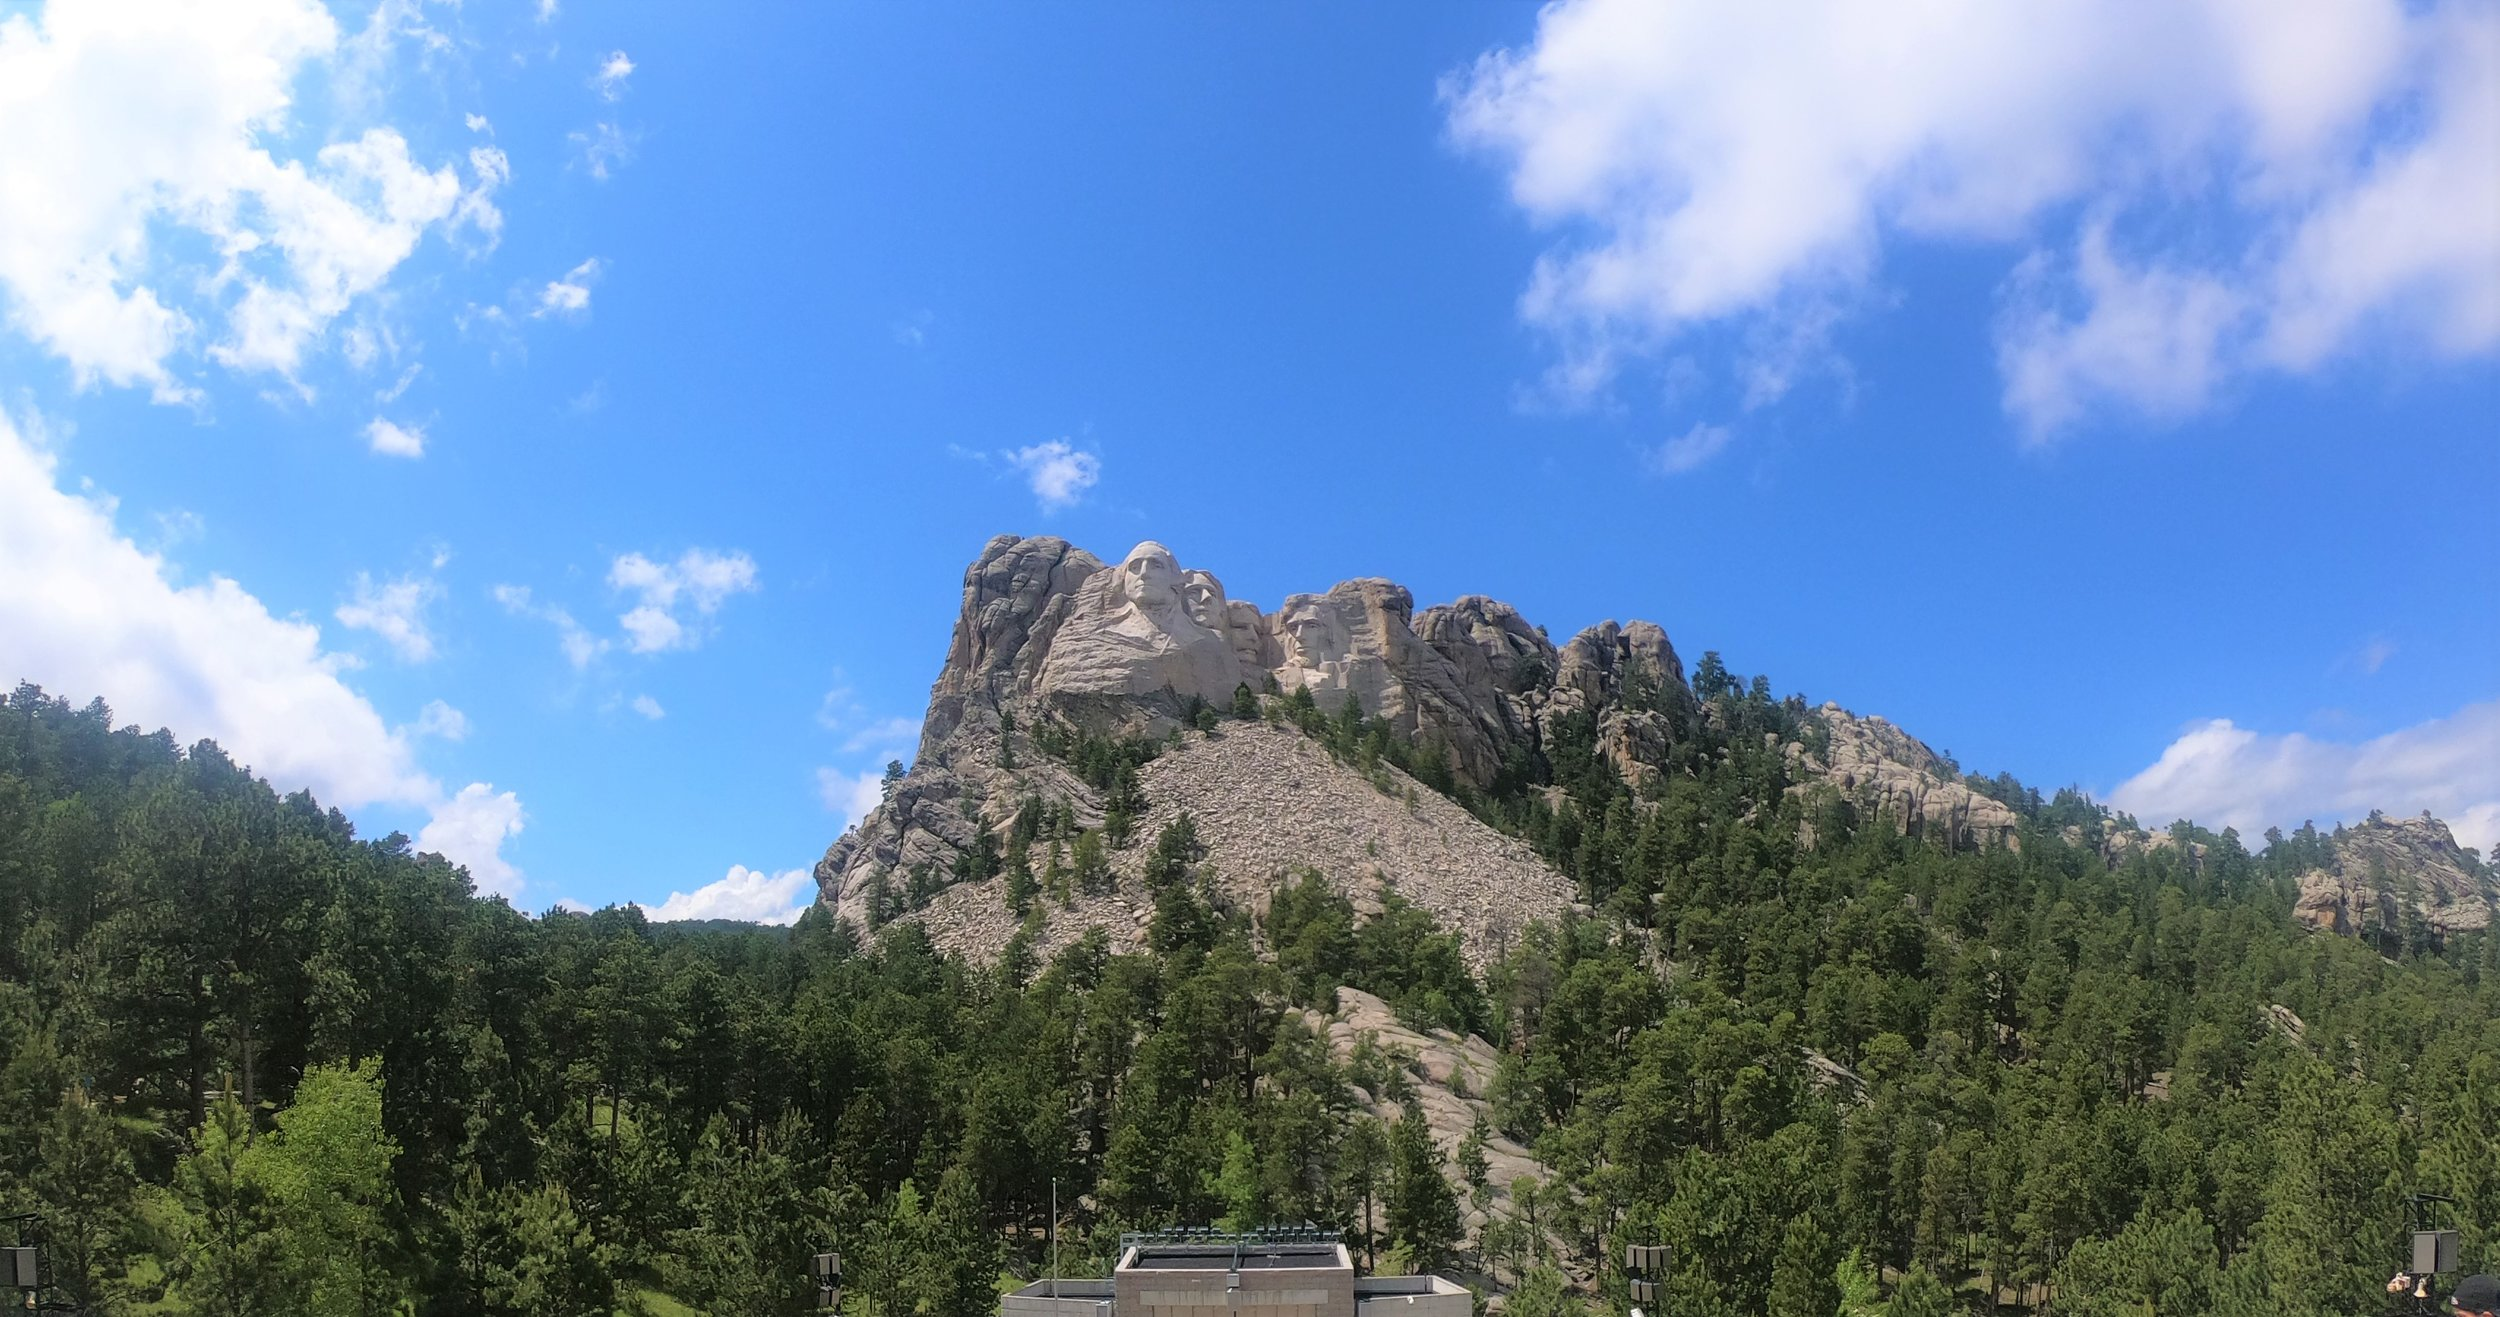 Mount Rushmore in the Black Hills, South Dakota